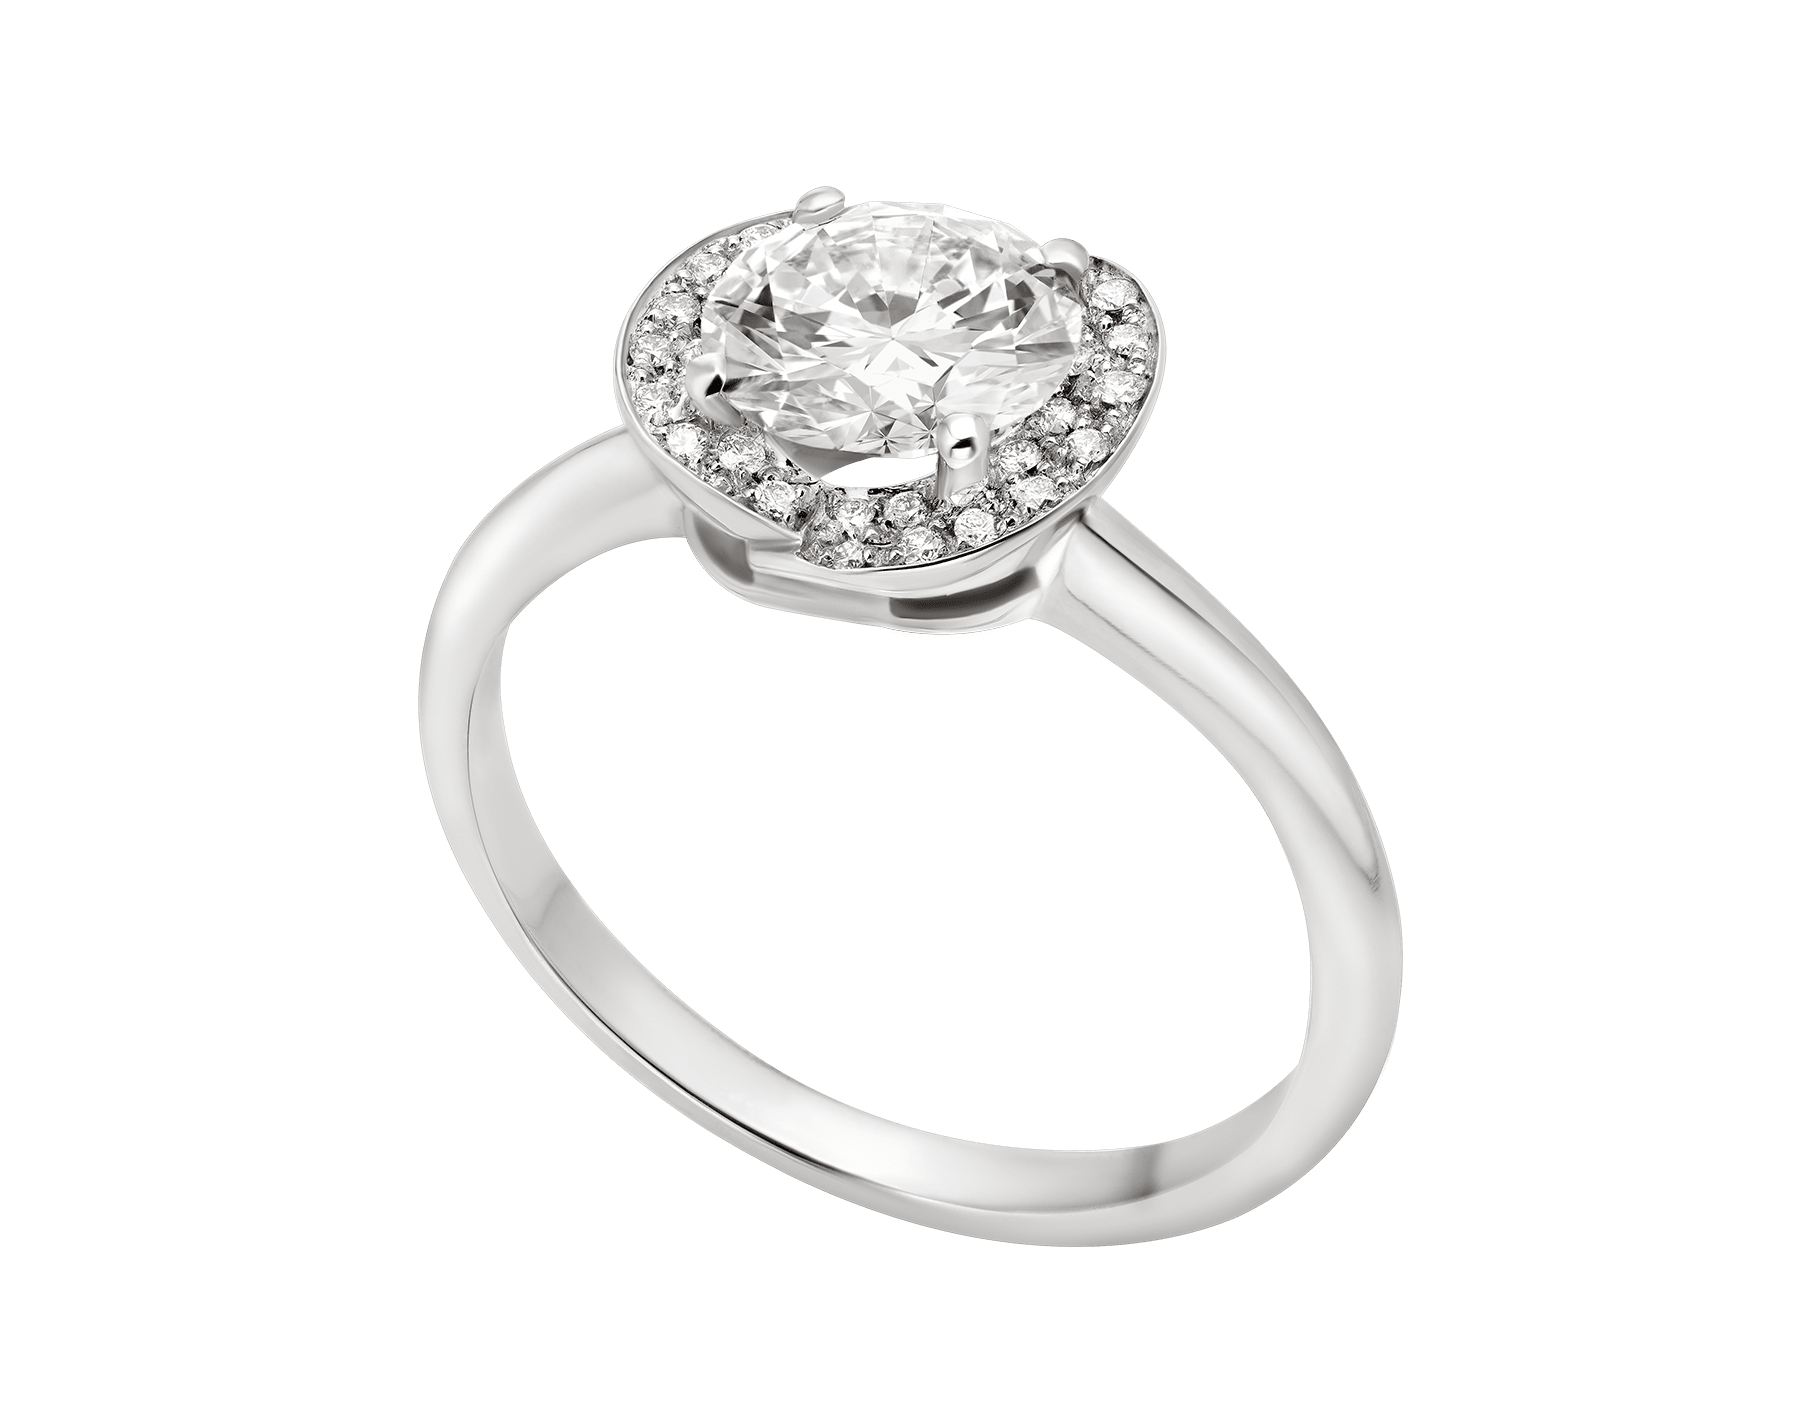 Incontro d'Amore platinum ring set with a round brilliant-cut diamond and a halo of pavé diamonds. 355436 image 4